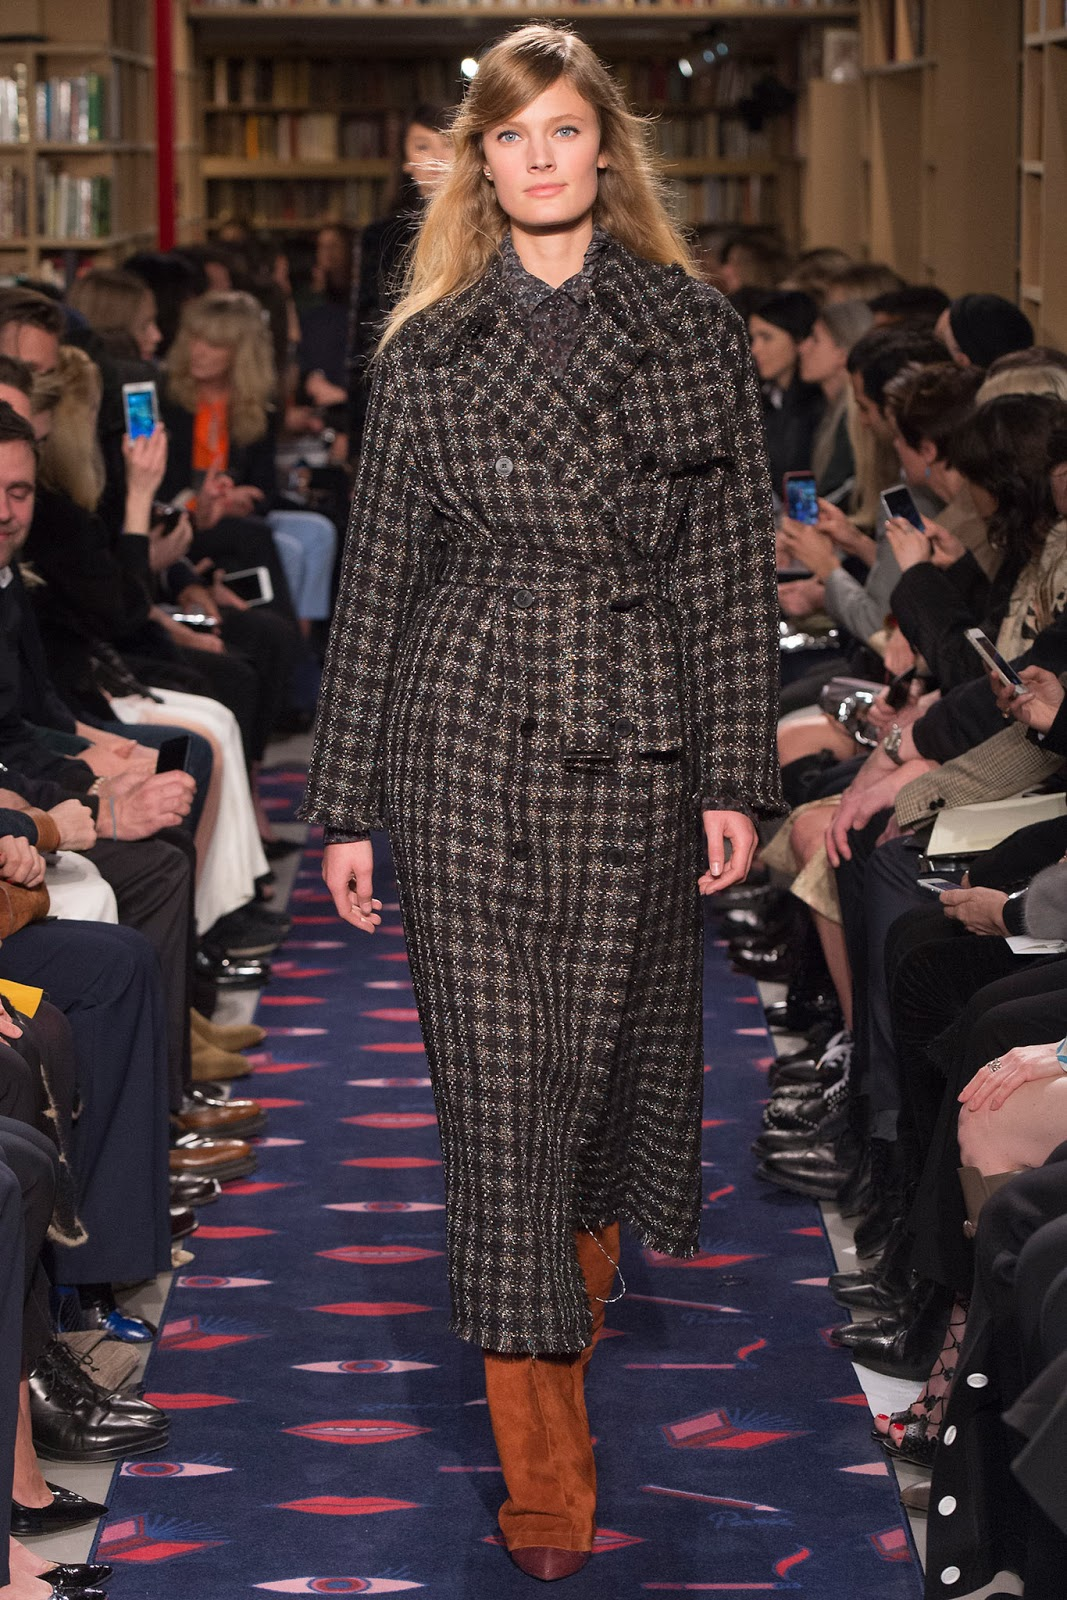 Trench coats as seen on a runway at Sonia Rykiel Autumn/Winter 2015 via www.fashionedbylove.co.uk